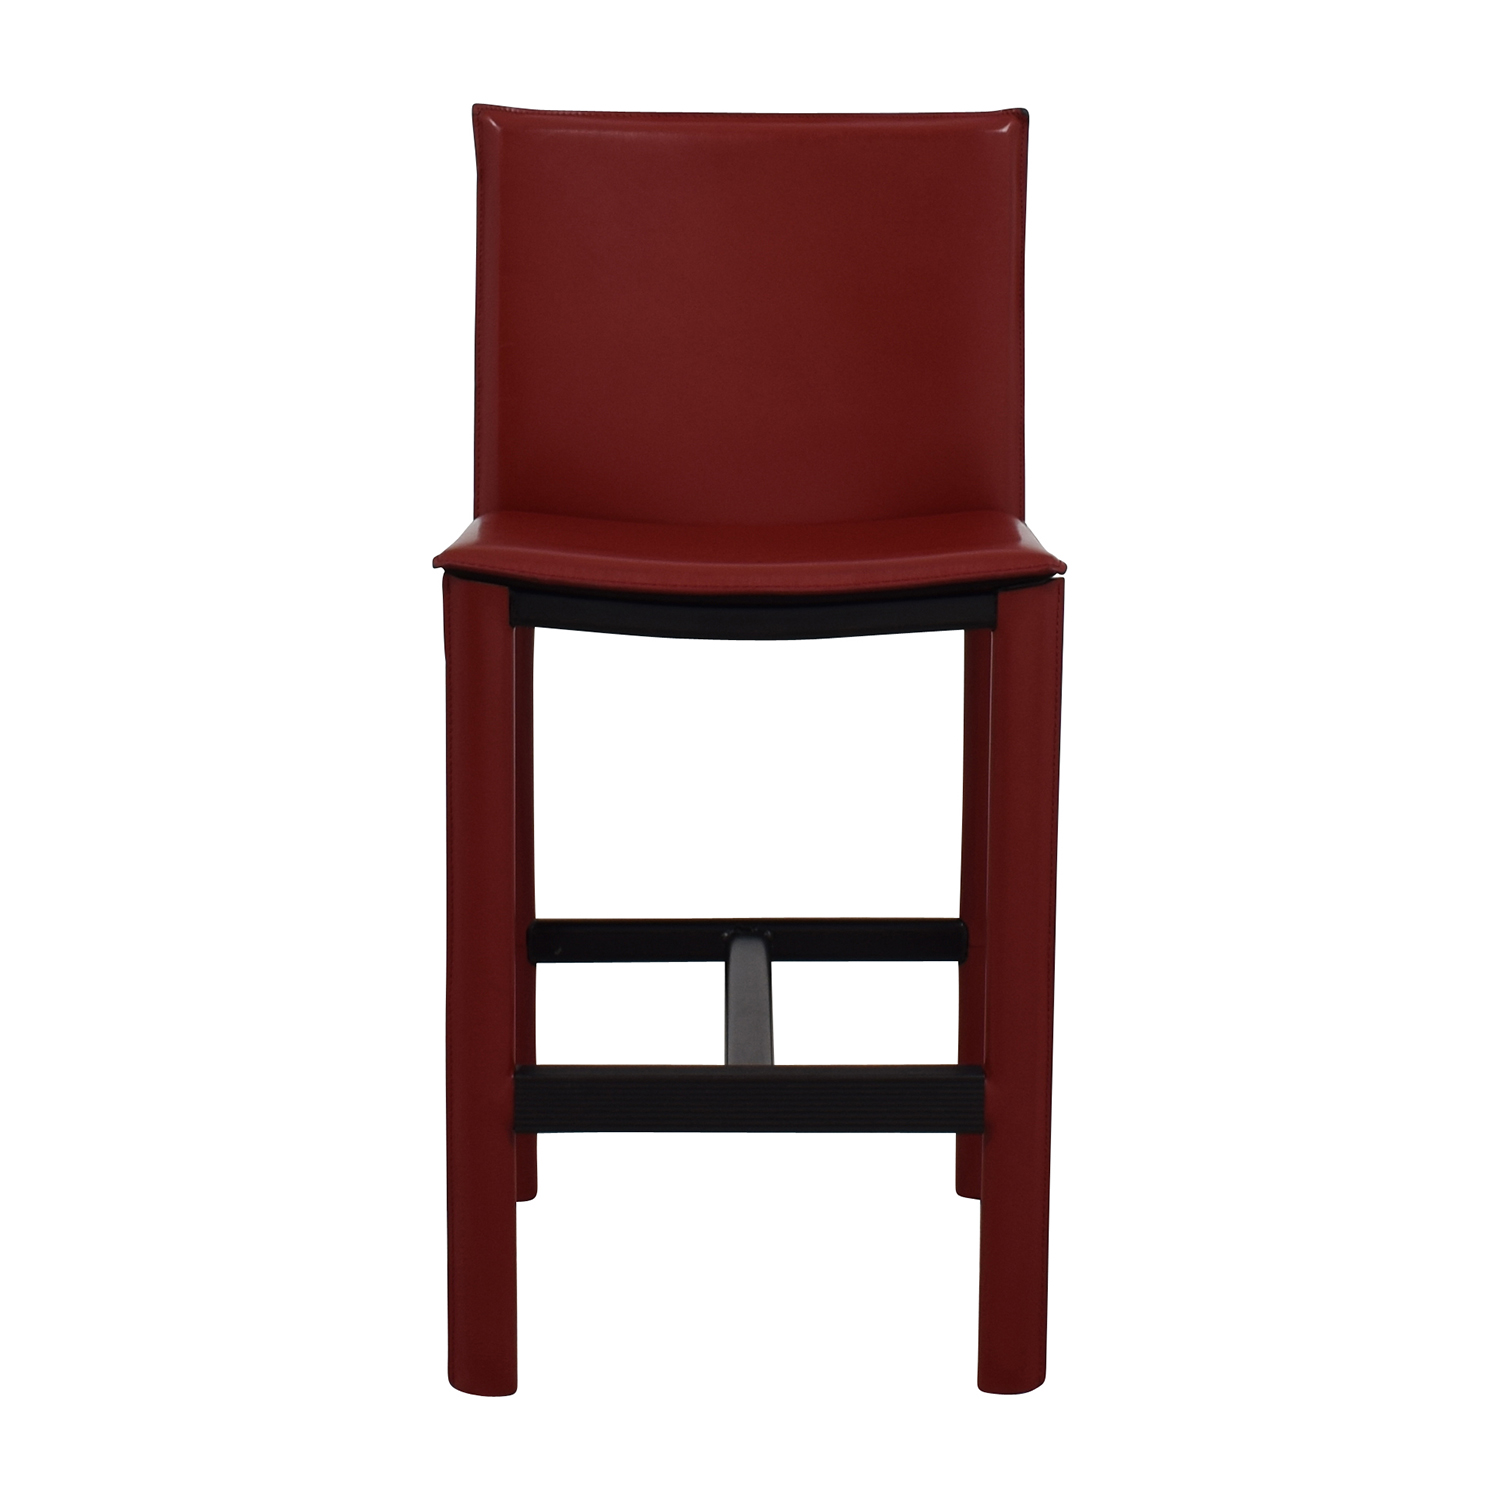 Pleasing 90 Off Room Board Room Board Sava Bar Stool In Red Leather Chairs Gmtry Best Dining Table And Chair Ideas Images Gmtryco